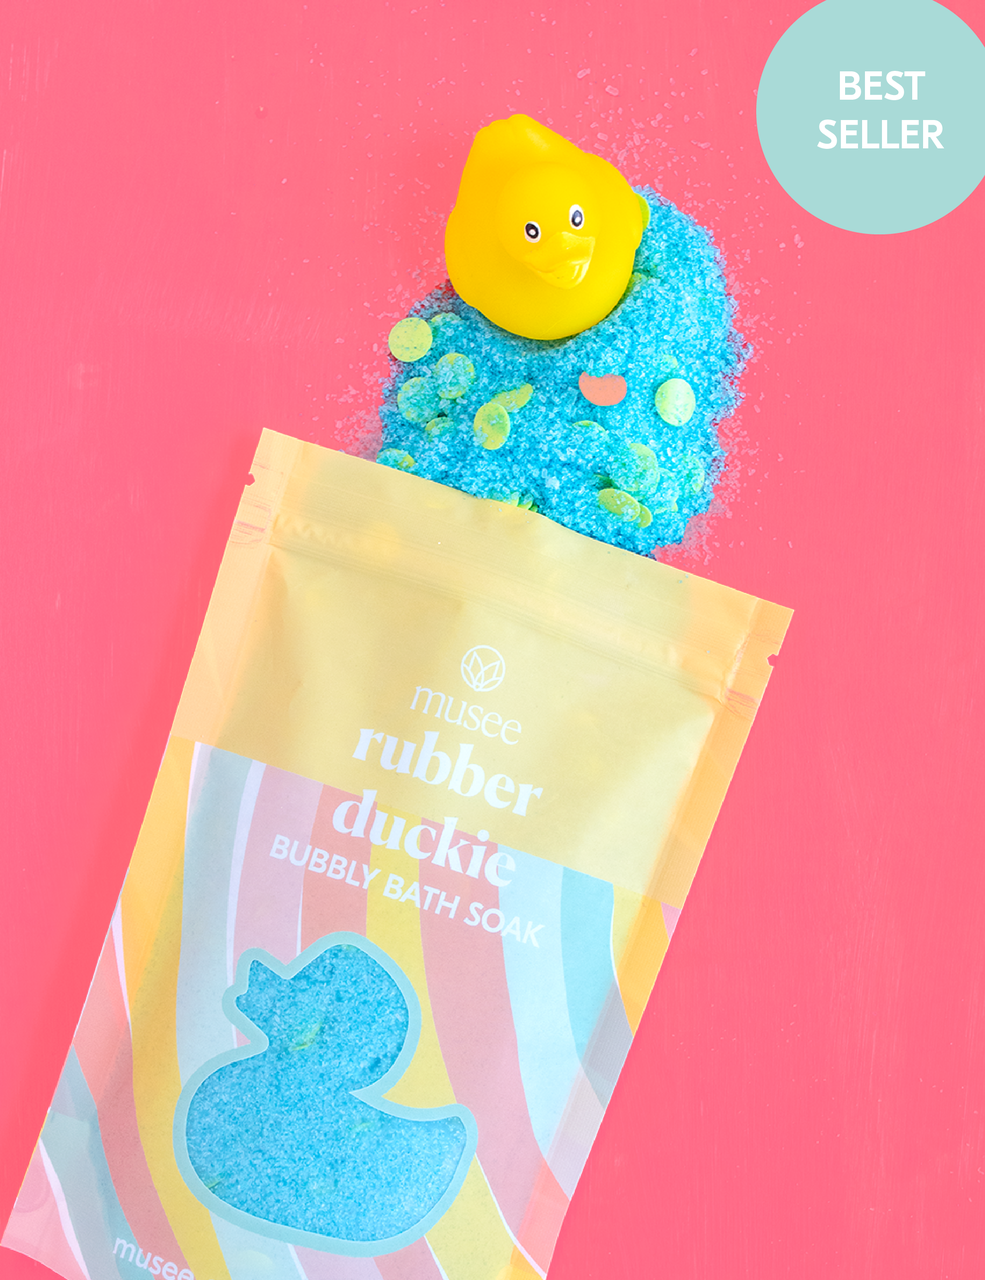 Rubber Duckie Bath Soak